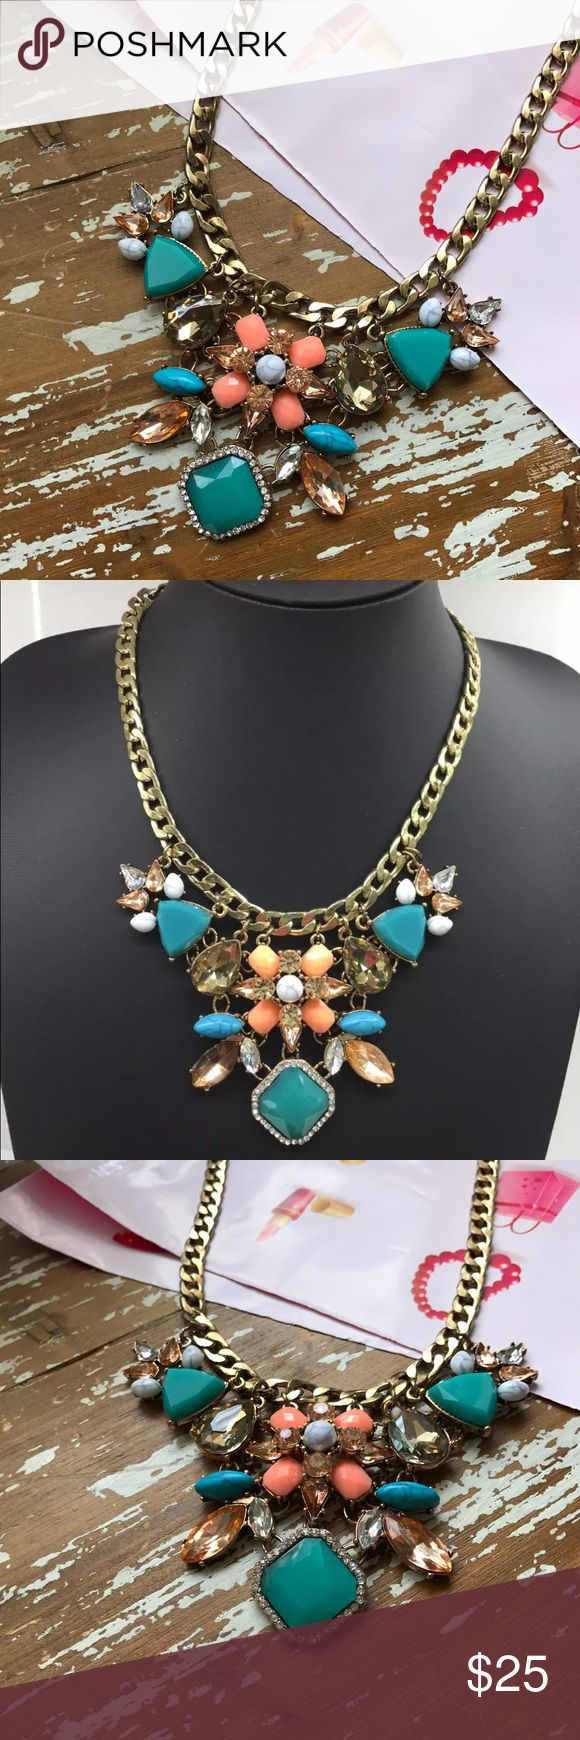 Just In🌷Gold Bold Statement Necklace 🌷 New Boutique Thick gold chain with crew/bib Necklace. Has some Crystal 💎 gems and other resin faux Corals, blue and turquoise stone.📌 Please Note 4/5 picture one small rhinestone got stuck to center stone, it's n